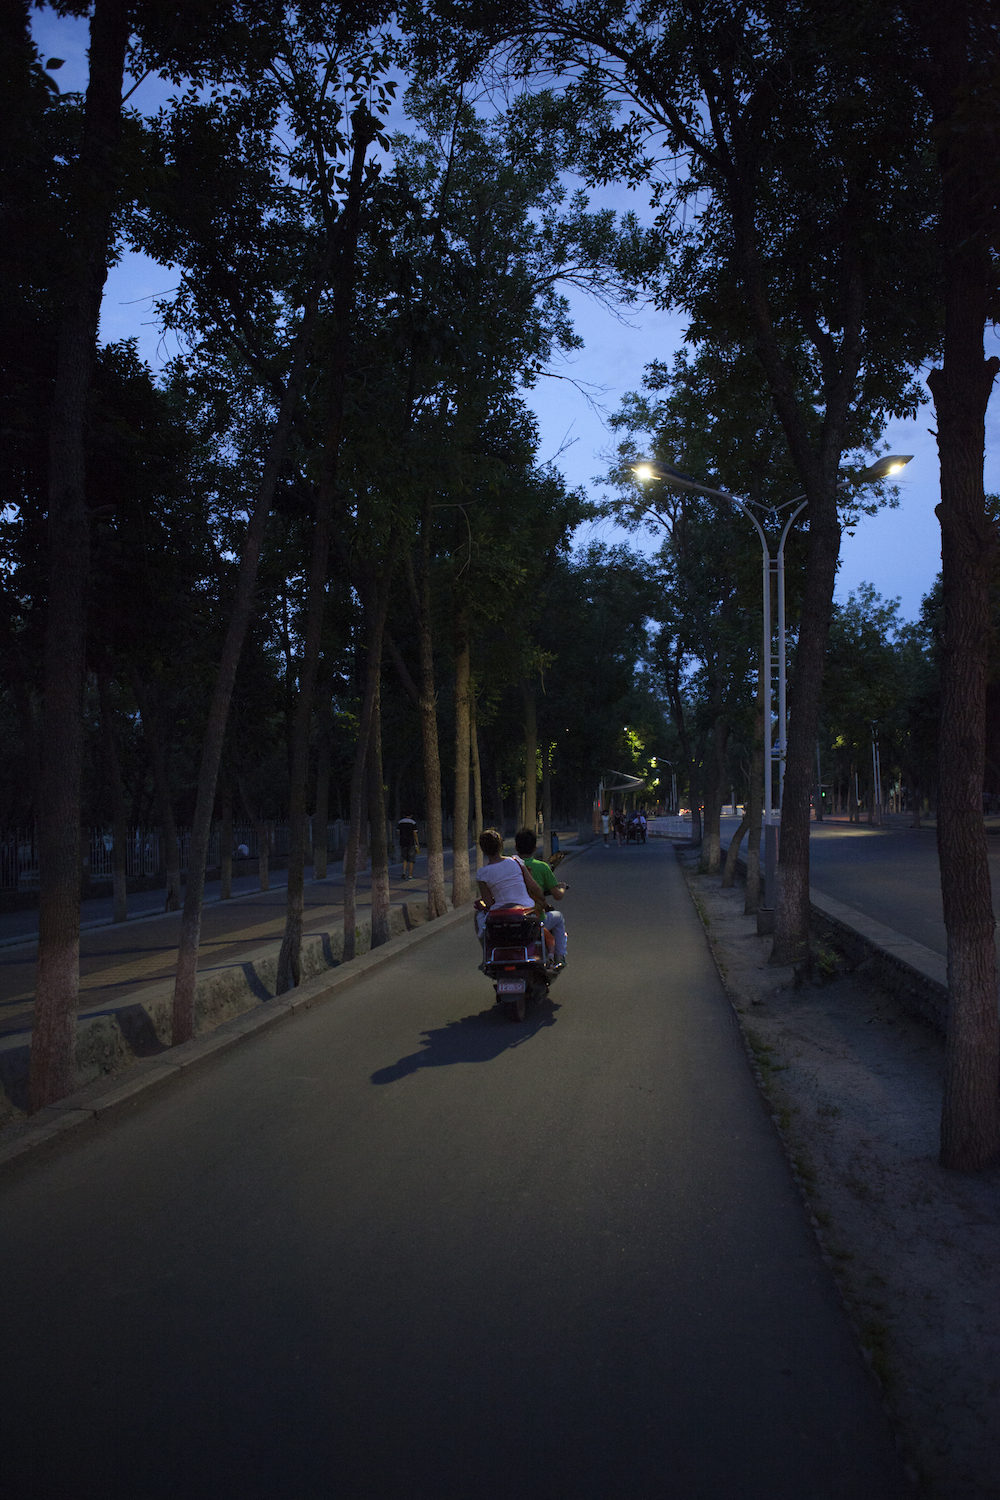 China_scooterpath_color copy_web.jpg